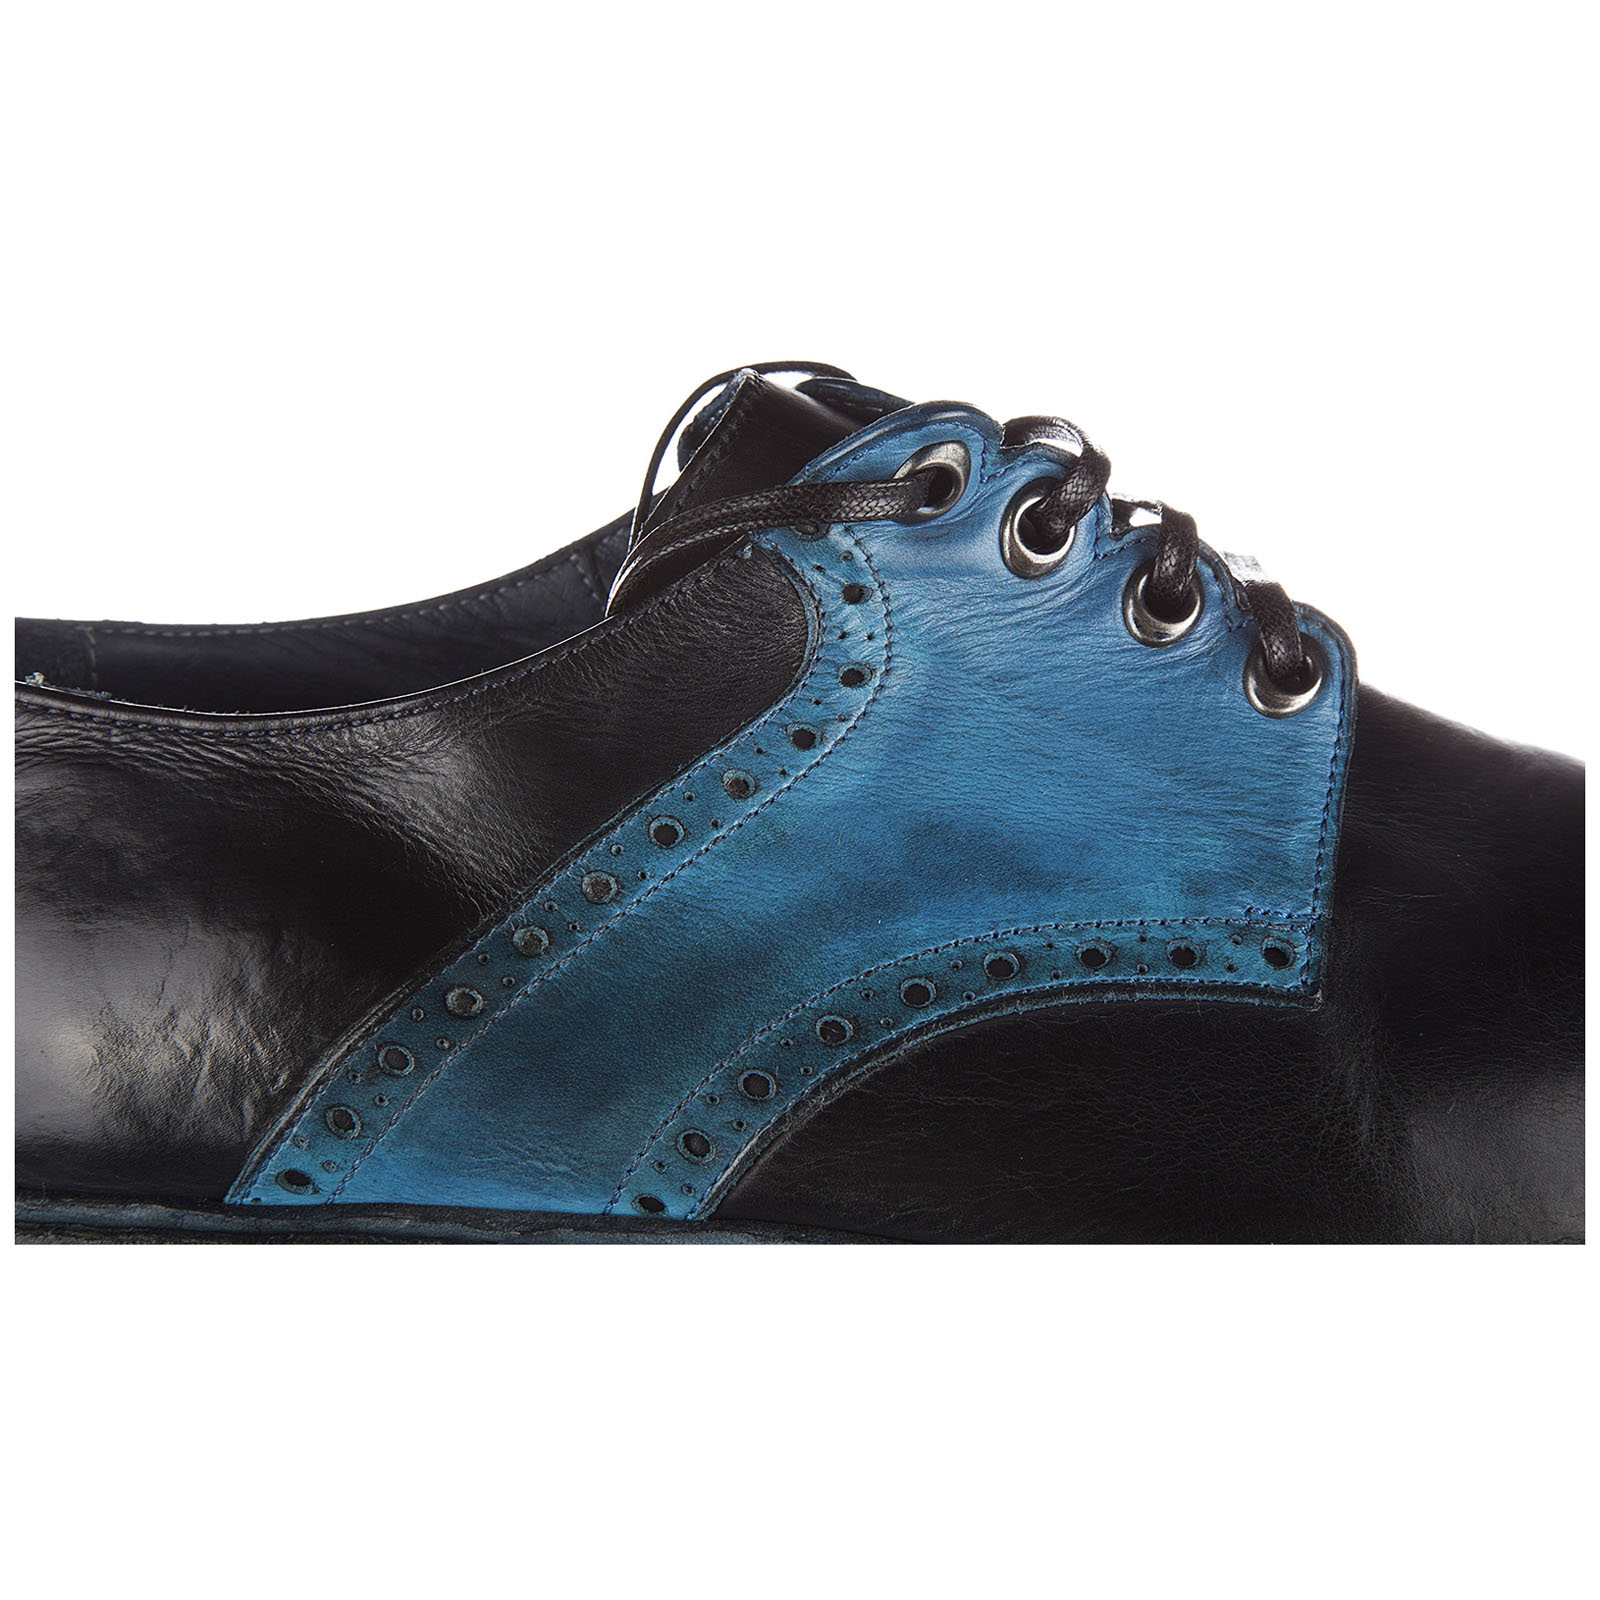 Men's classic leather lace up laced formal shoes derby michelangelo bellini